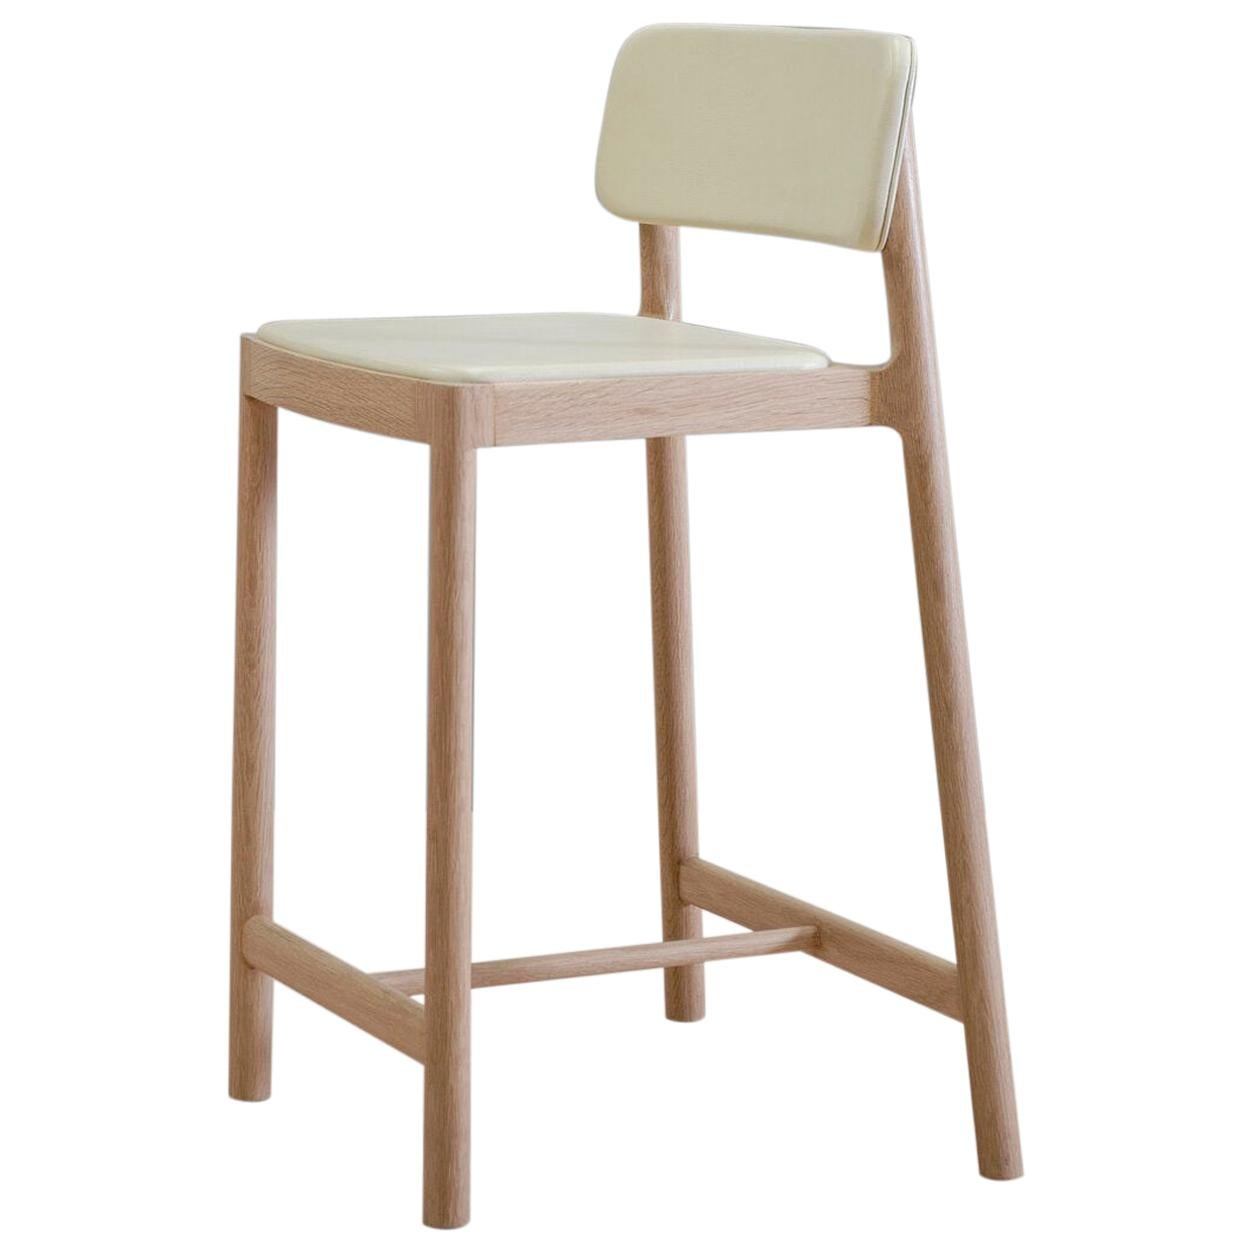 Linard, Oak and White Leather Stool